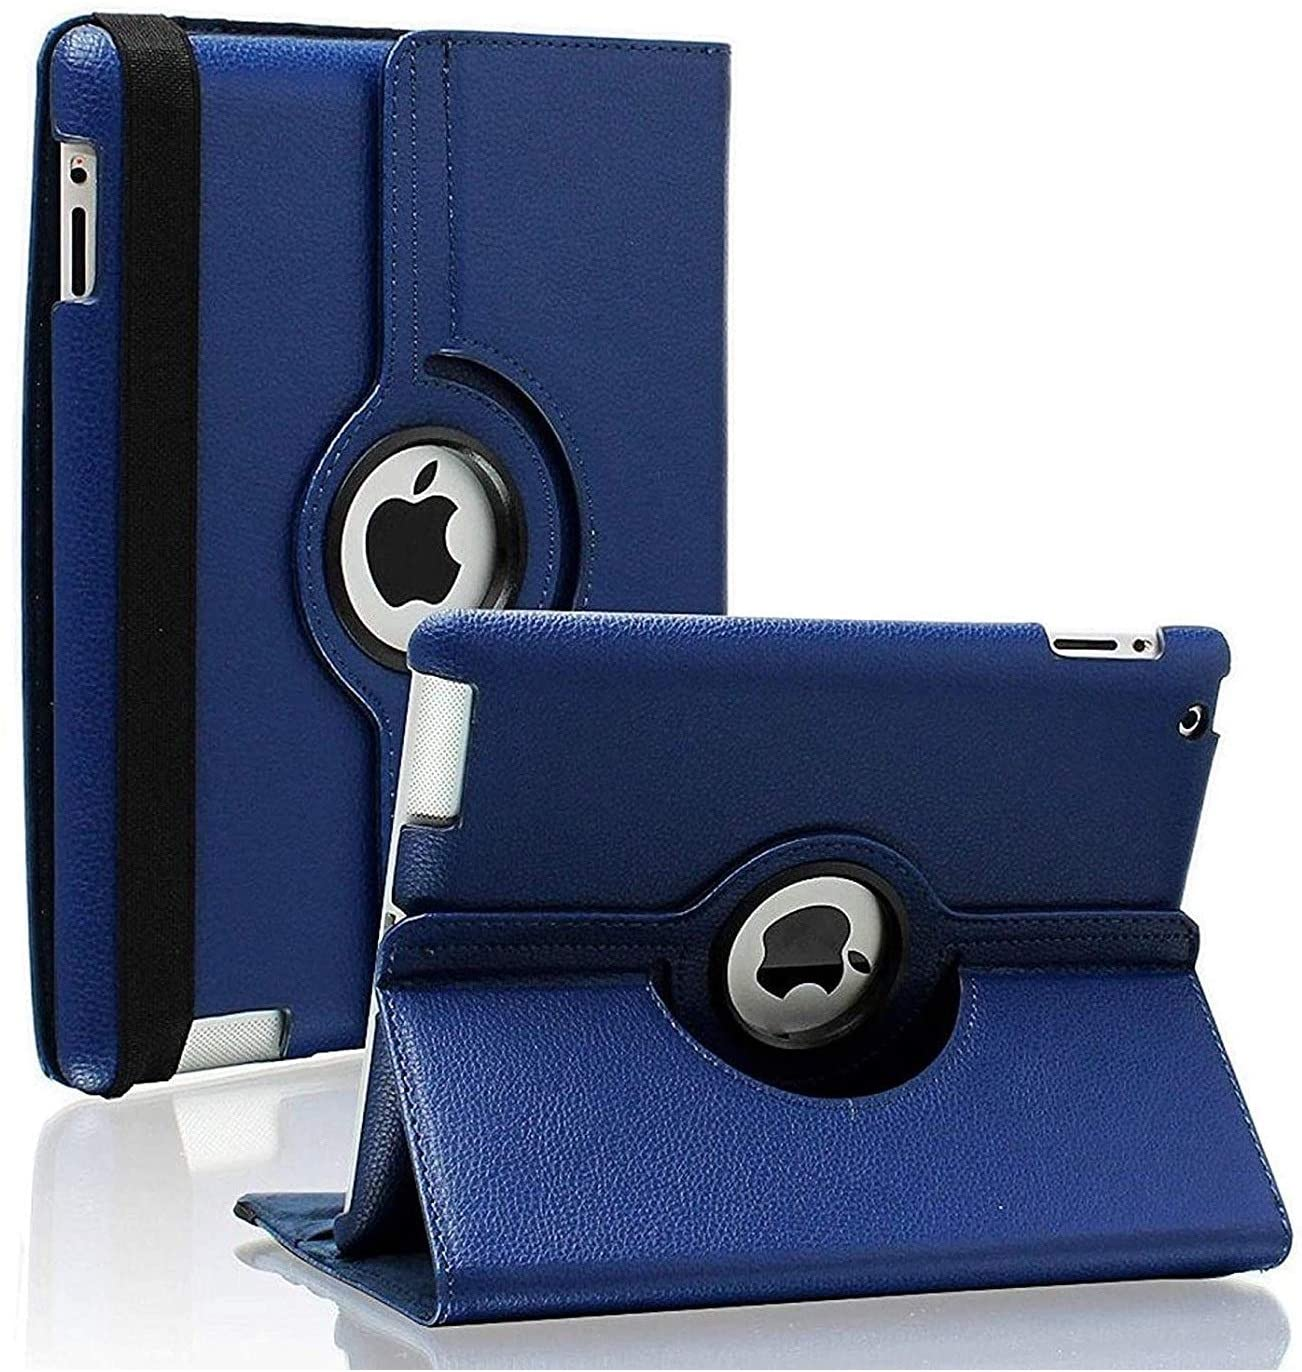 iPad 2/3/4 Case - 360 Degree Rotating Stand Smart Case Protective Cover with Auto Wake Up/Sleep Feature for Apple iPad 4, iPad 3 & iPad 2 (Navy)